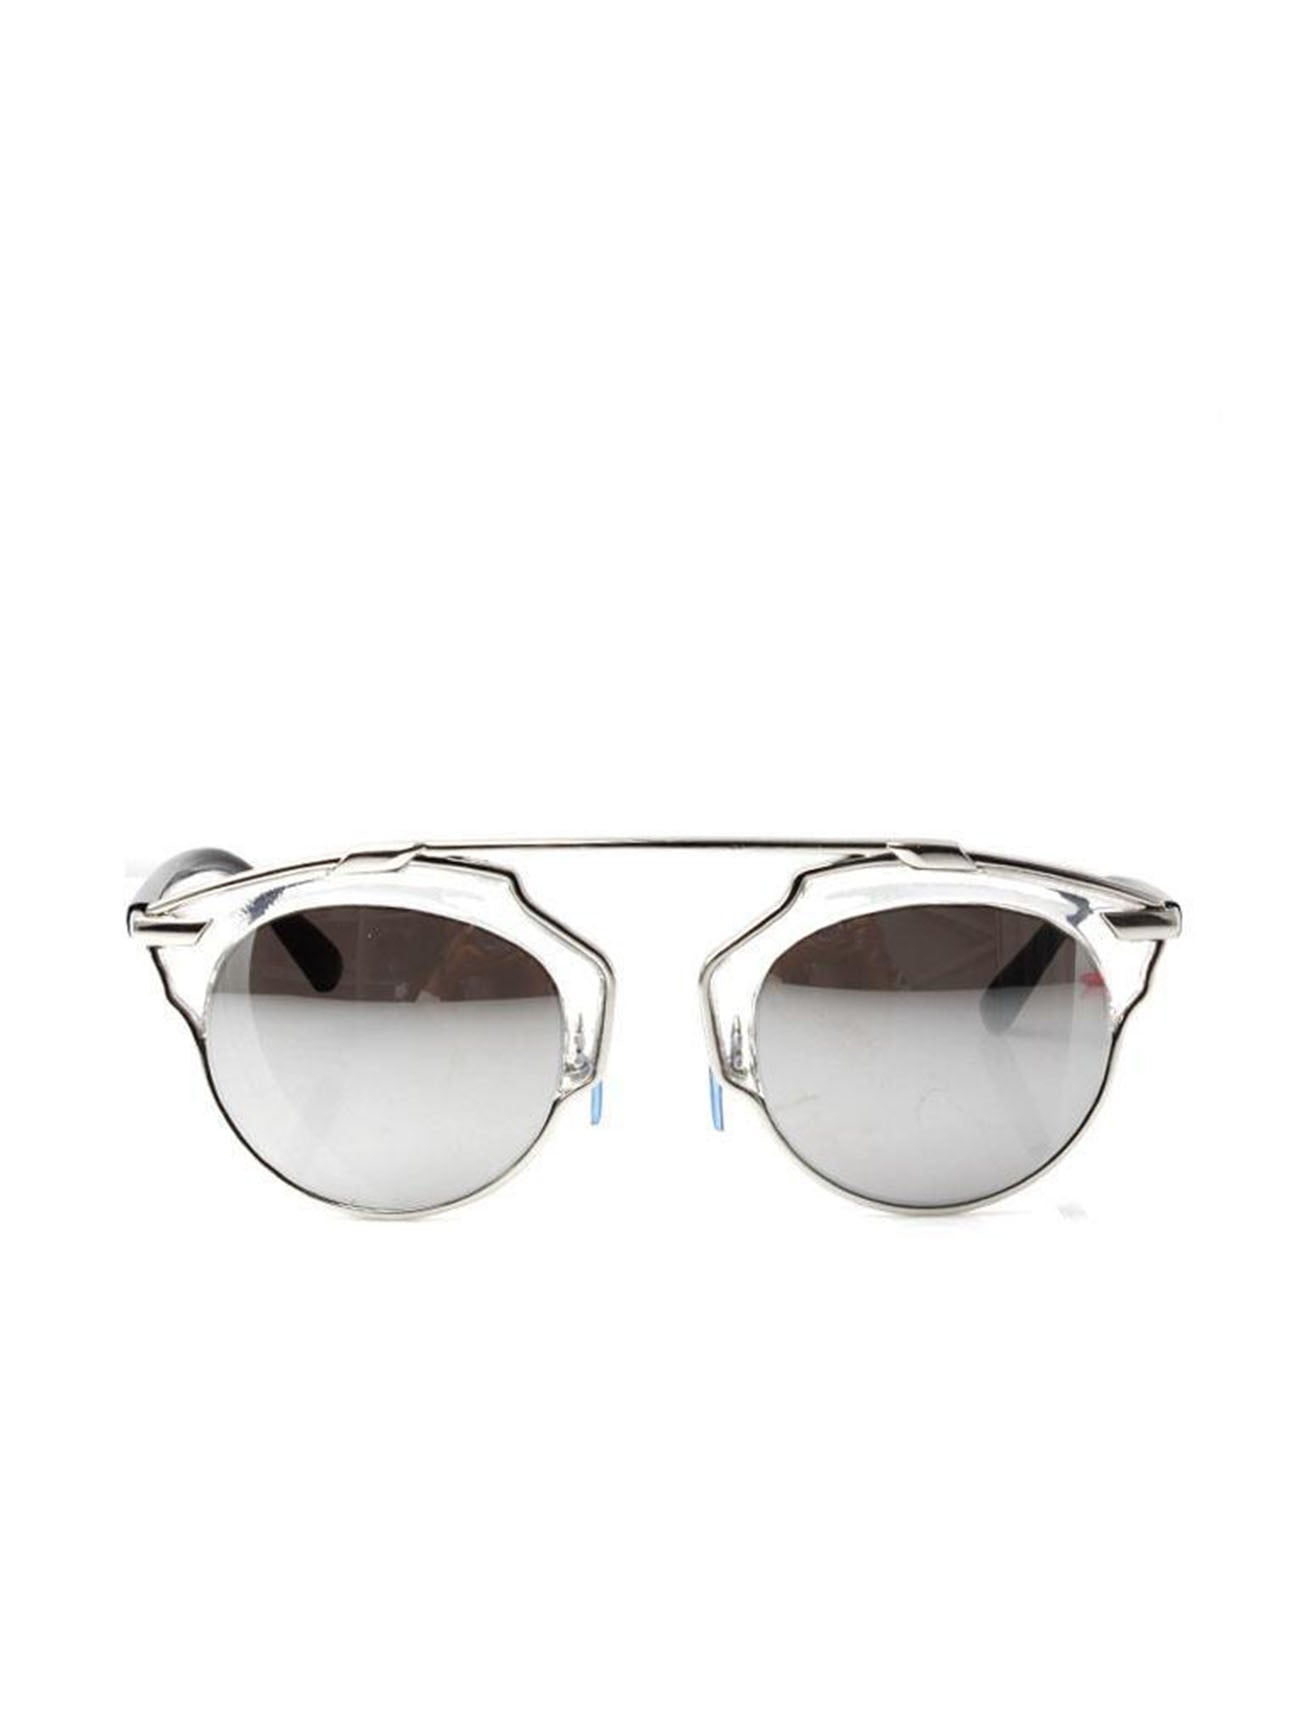 Silver Round Cut Out Frame Sunglasses with Black Arms and Silver Revo Lenses